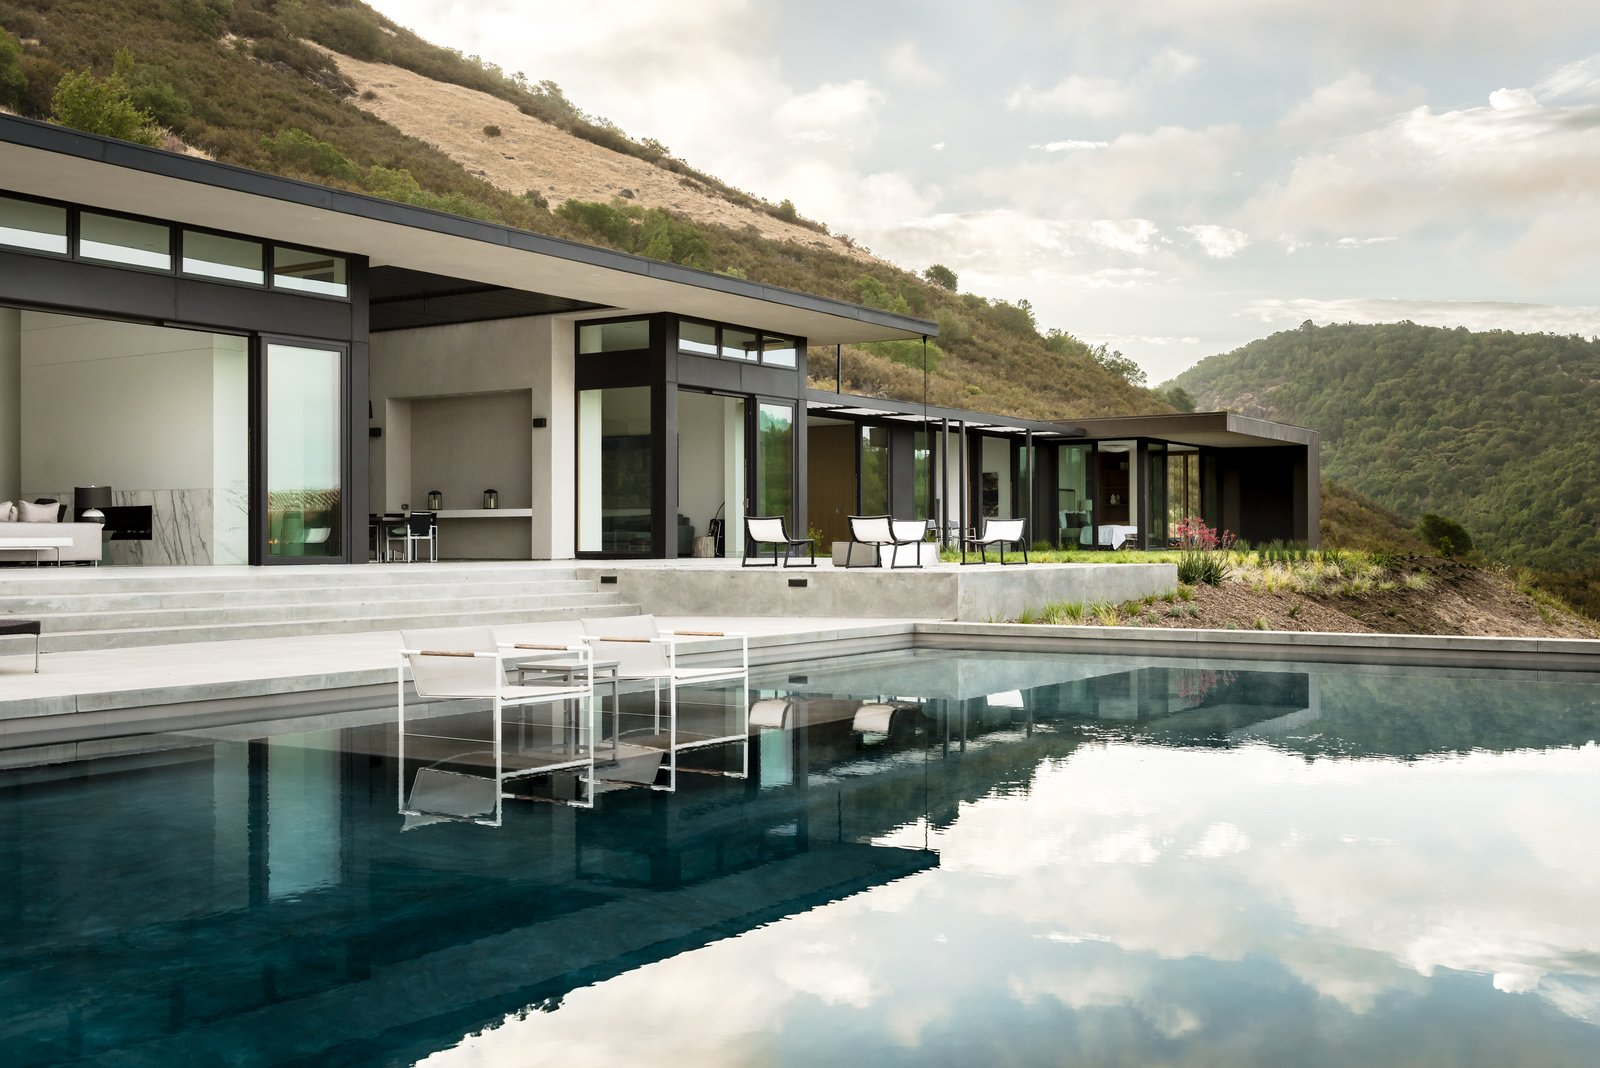 Tagged: Outdoor, Back Yard, Slope, Grass, Large Pools, Tubs, Shower, Infinity Pools, Tubs, Shower, Concrete Pools, Tubs, Shower, Swimming Pools, Tubs, Shower, Large Patio, Porch, Deck, and Concrete Patio, Porch, Deck.  Silverado by John Maniscalco Architecture